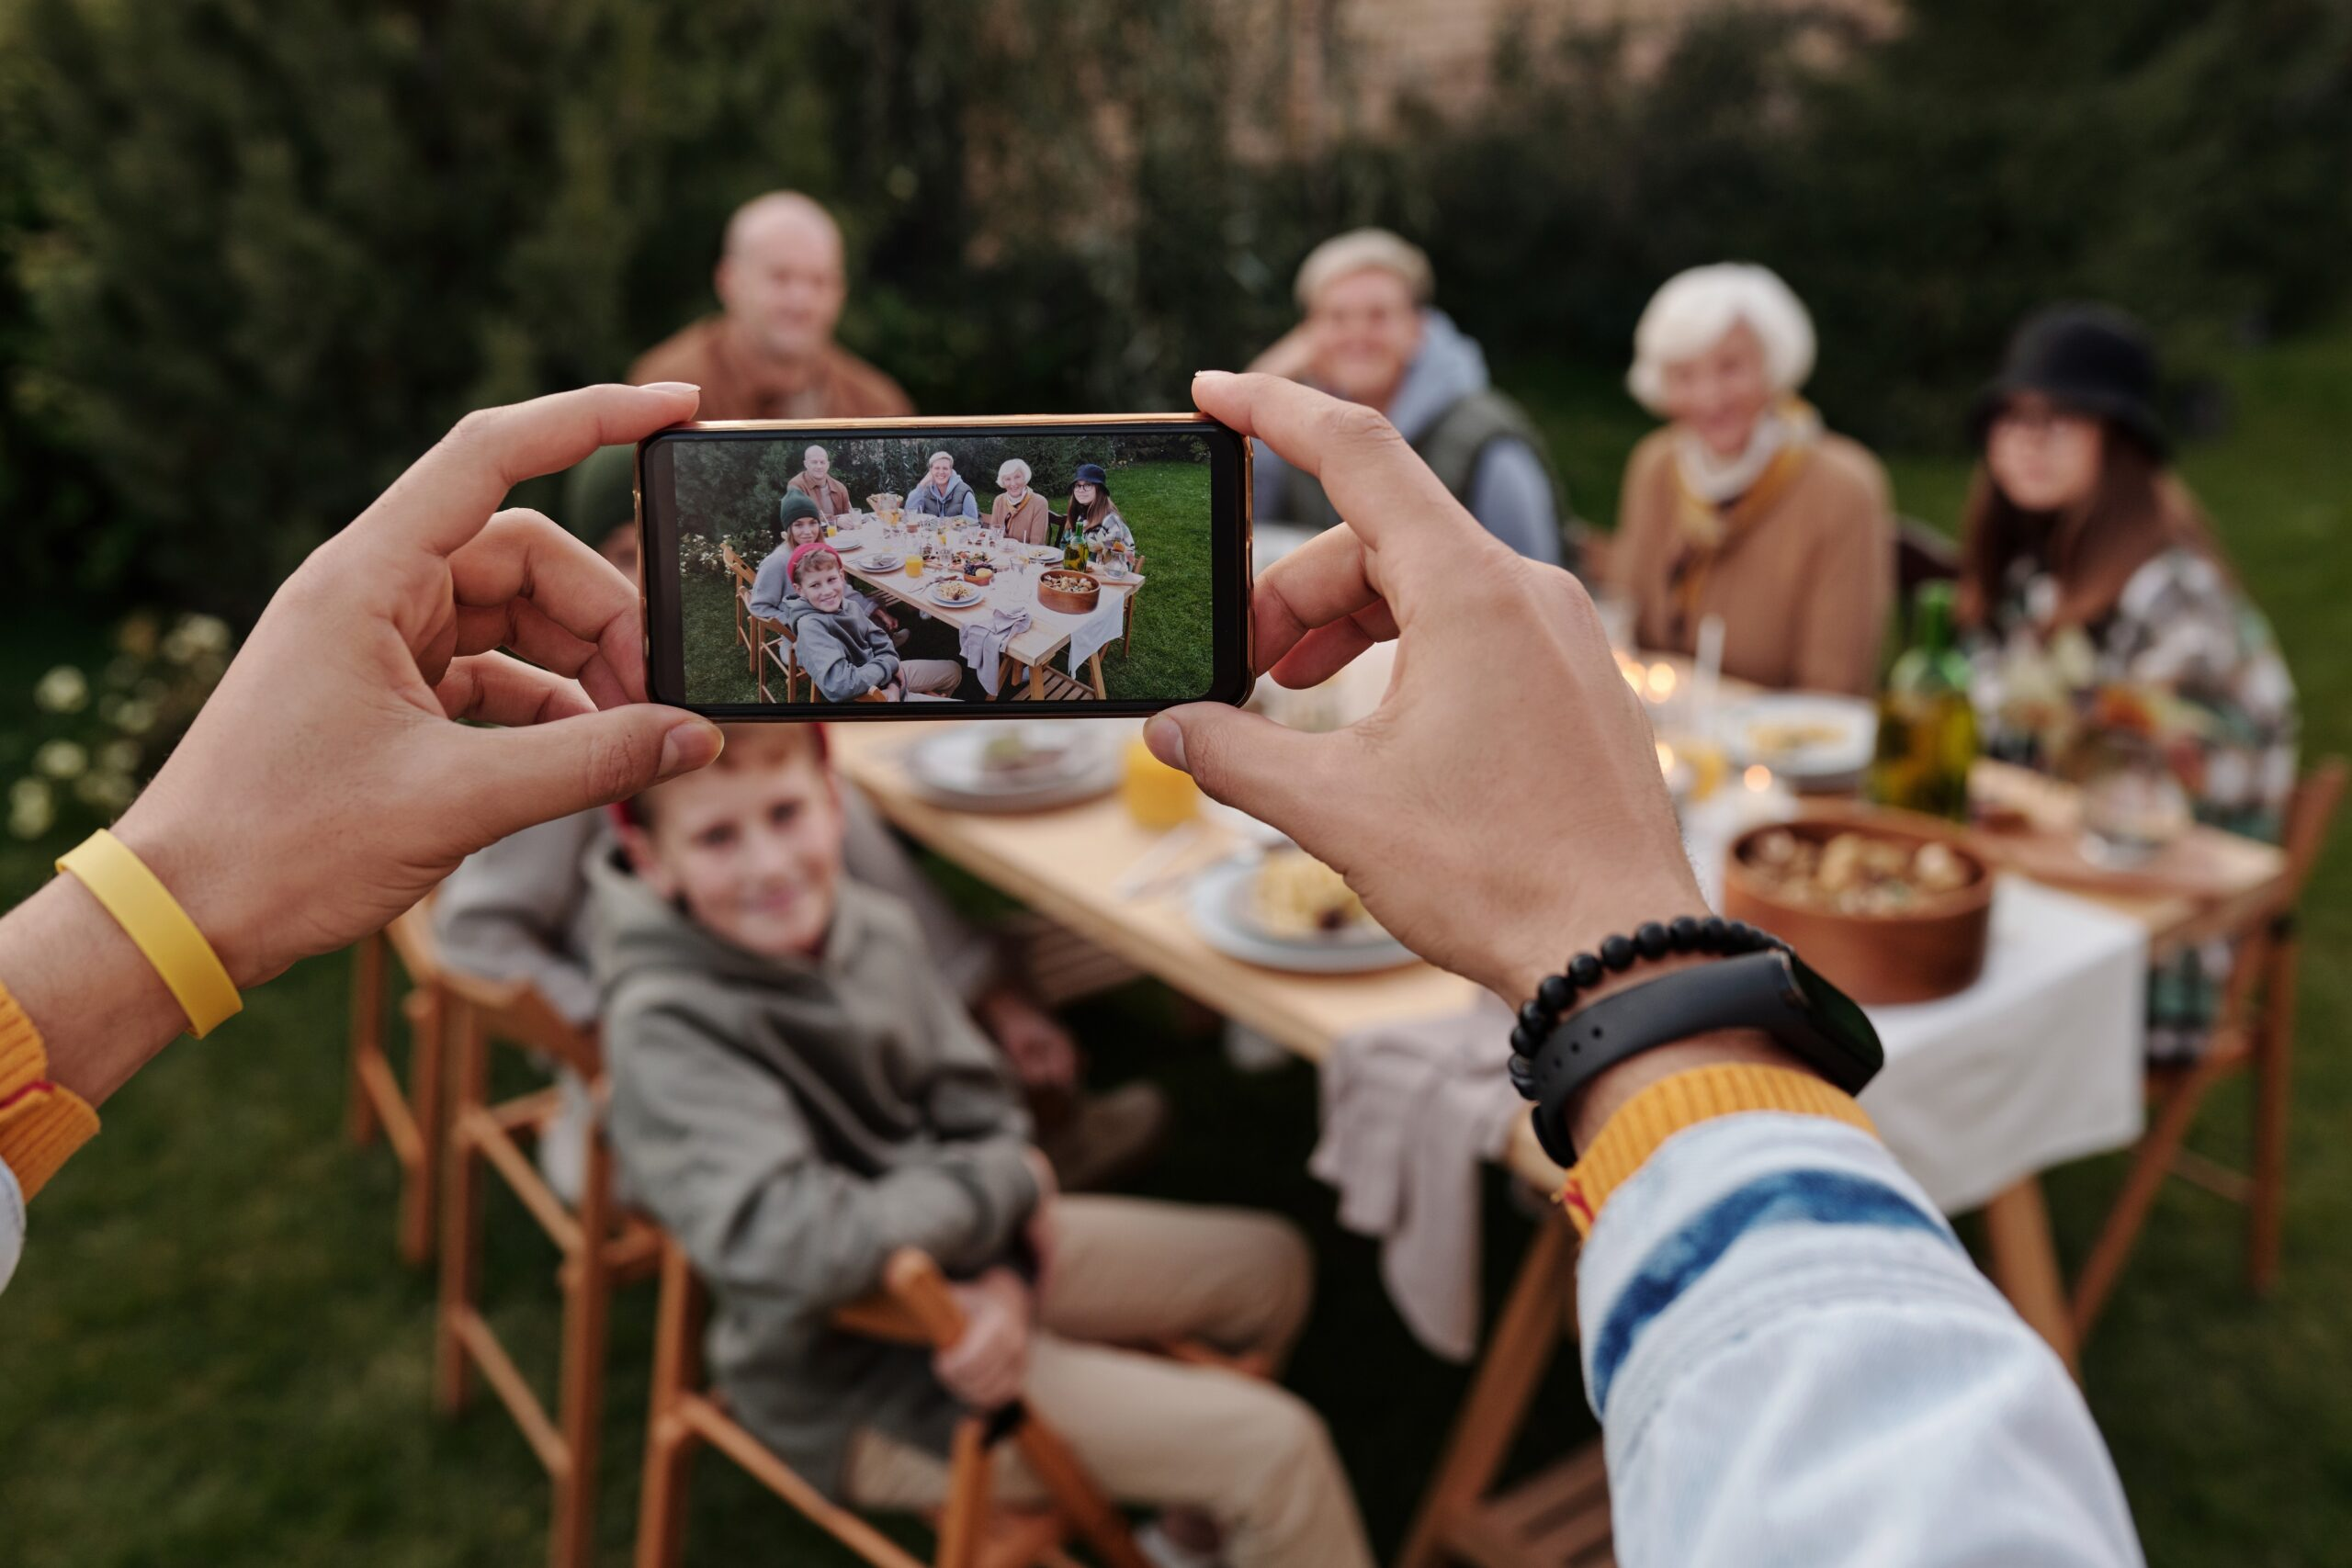 Someone taking a photo of family dinner